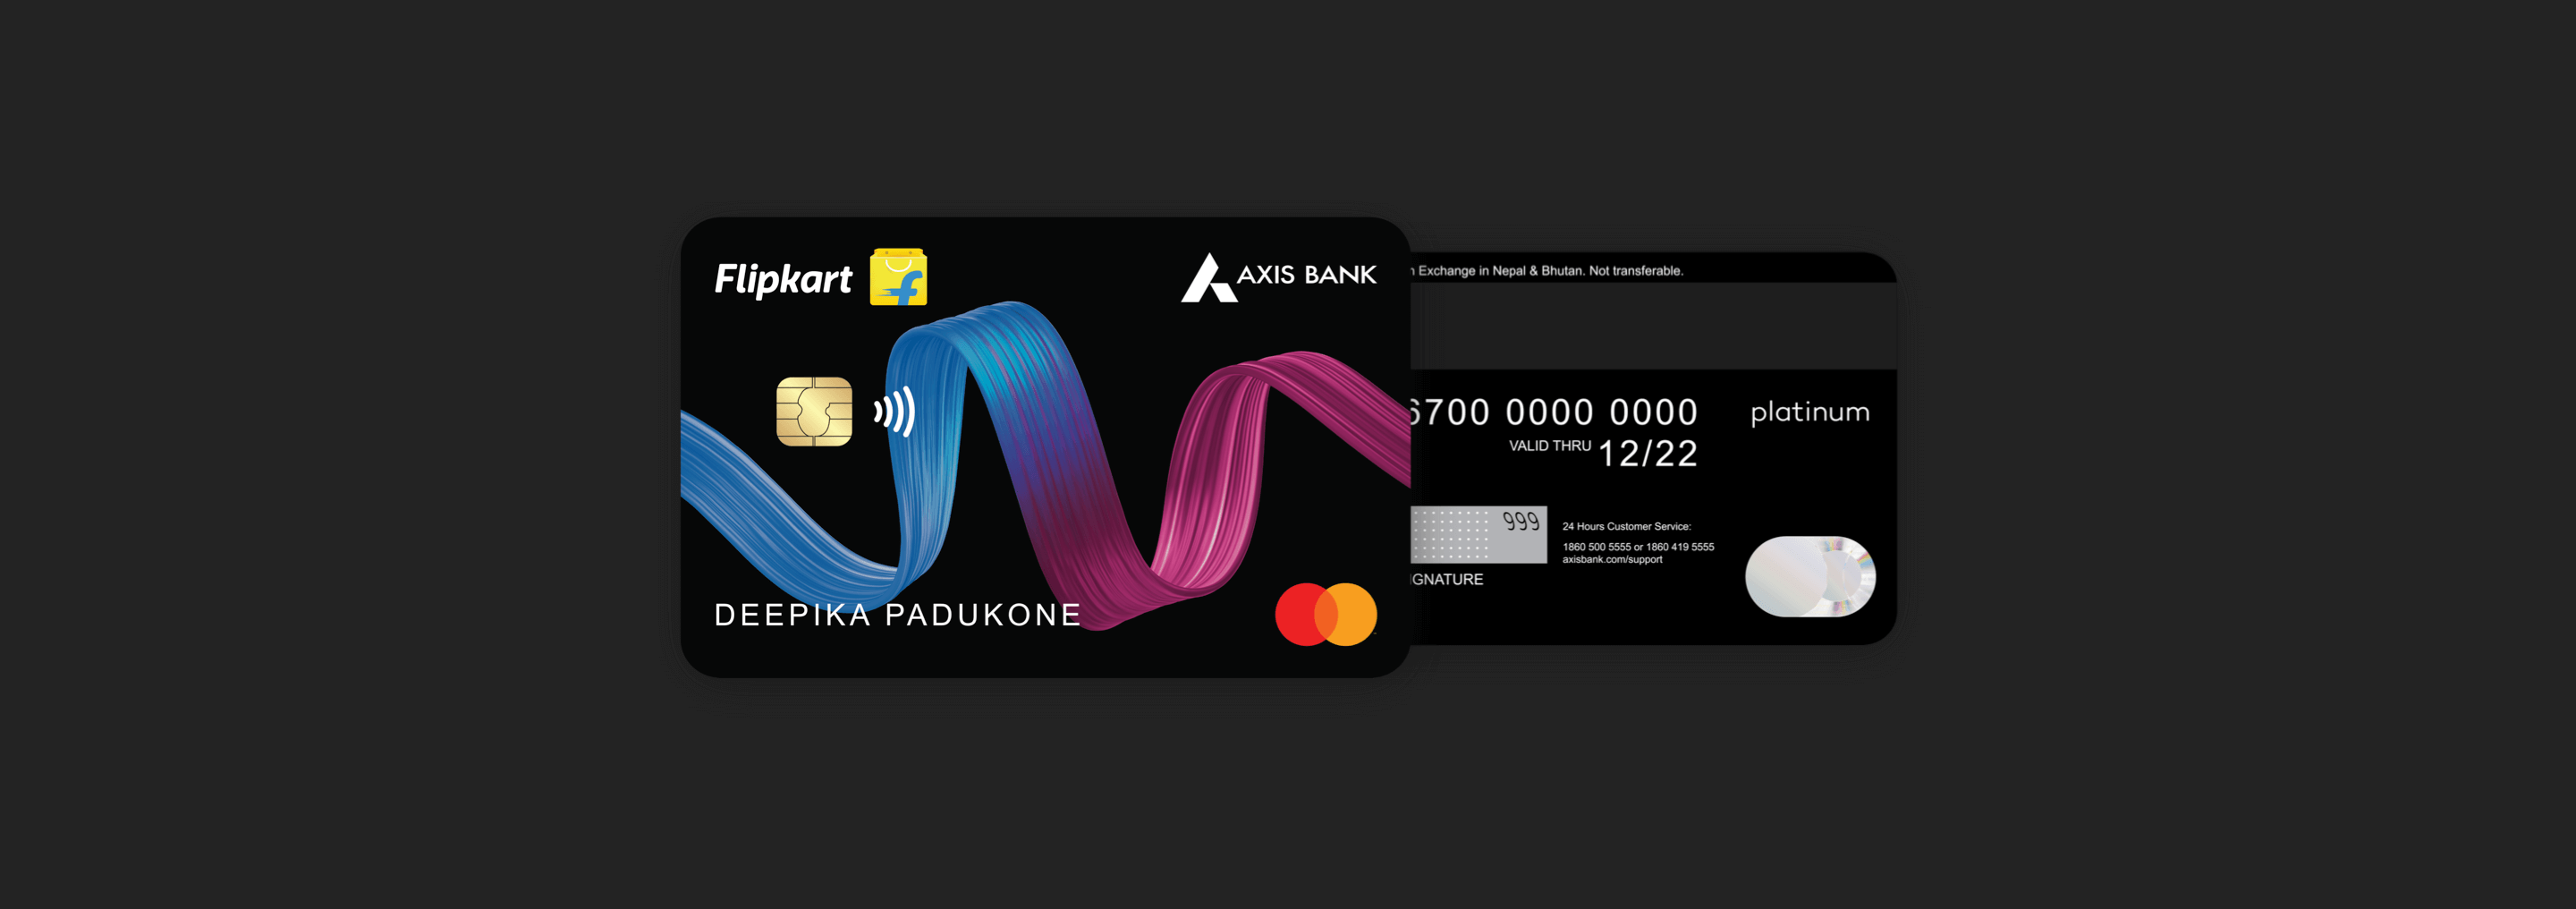 Making credit and retail more inclusive in India by partnering with Axis Bank and Mastercard to launch a co-branded credit card.